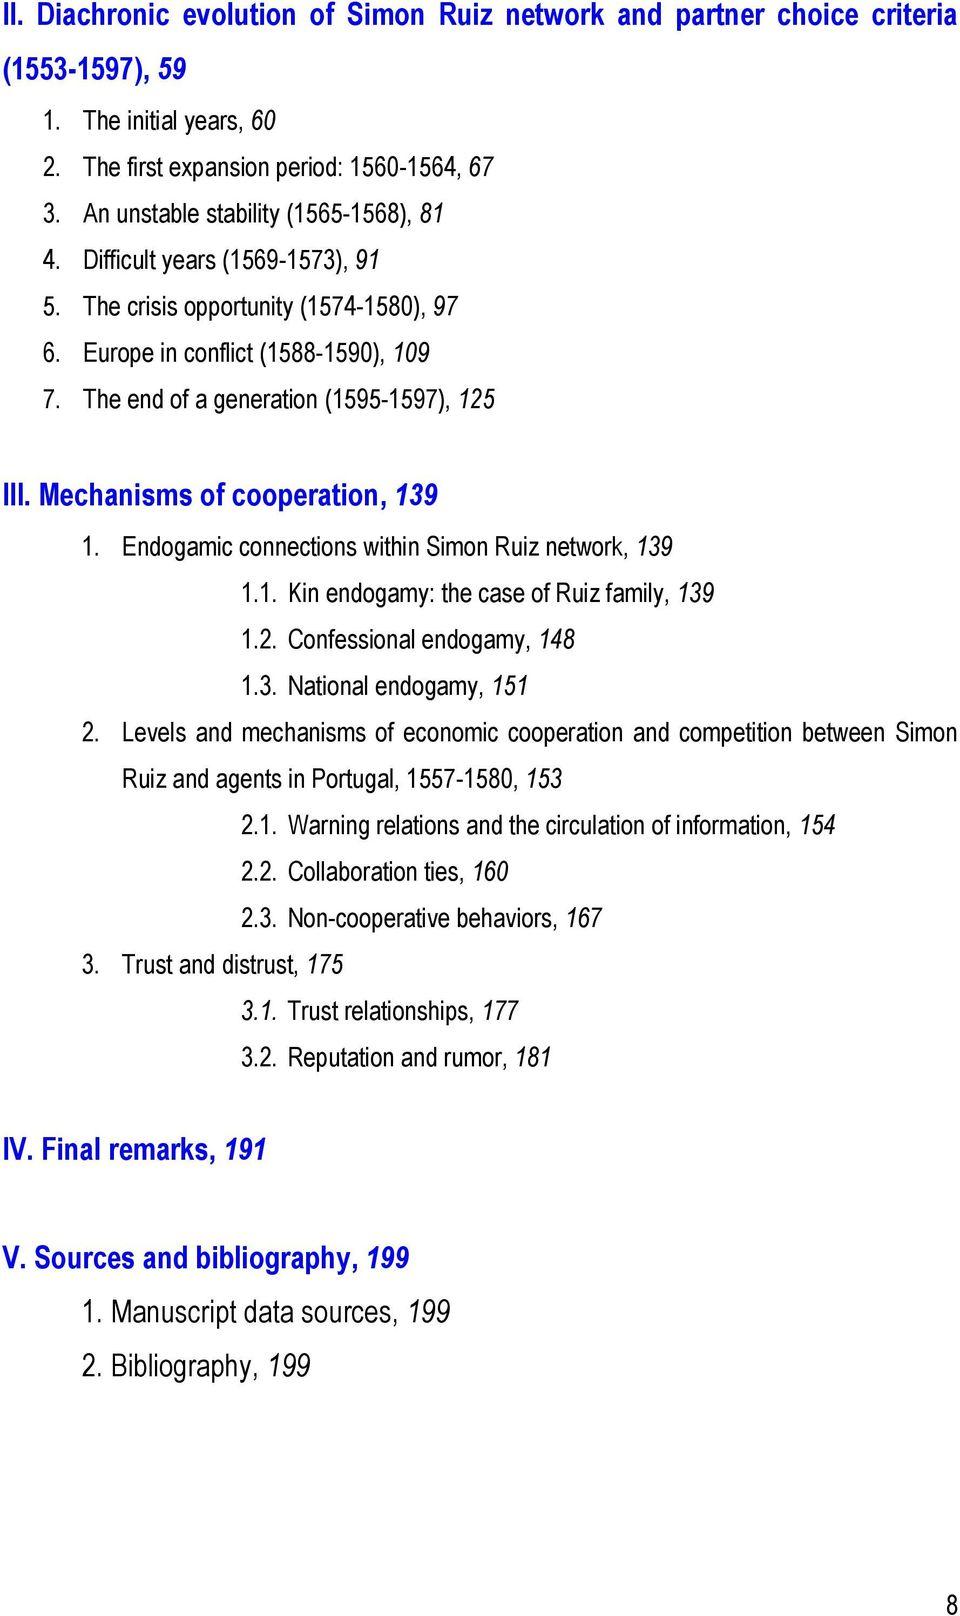 The end of a generation (1595-1597), 125 III. Mechanisms of cooperation, 139 1. Endogamic connections within Simon Ruiz network, 139 1.1. Kin endogamy: the case of Ruiz family, 139 1.2. Confessional endogamy, 148 1.